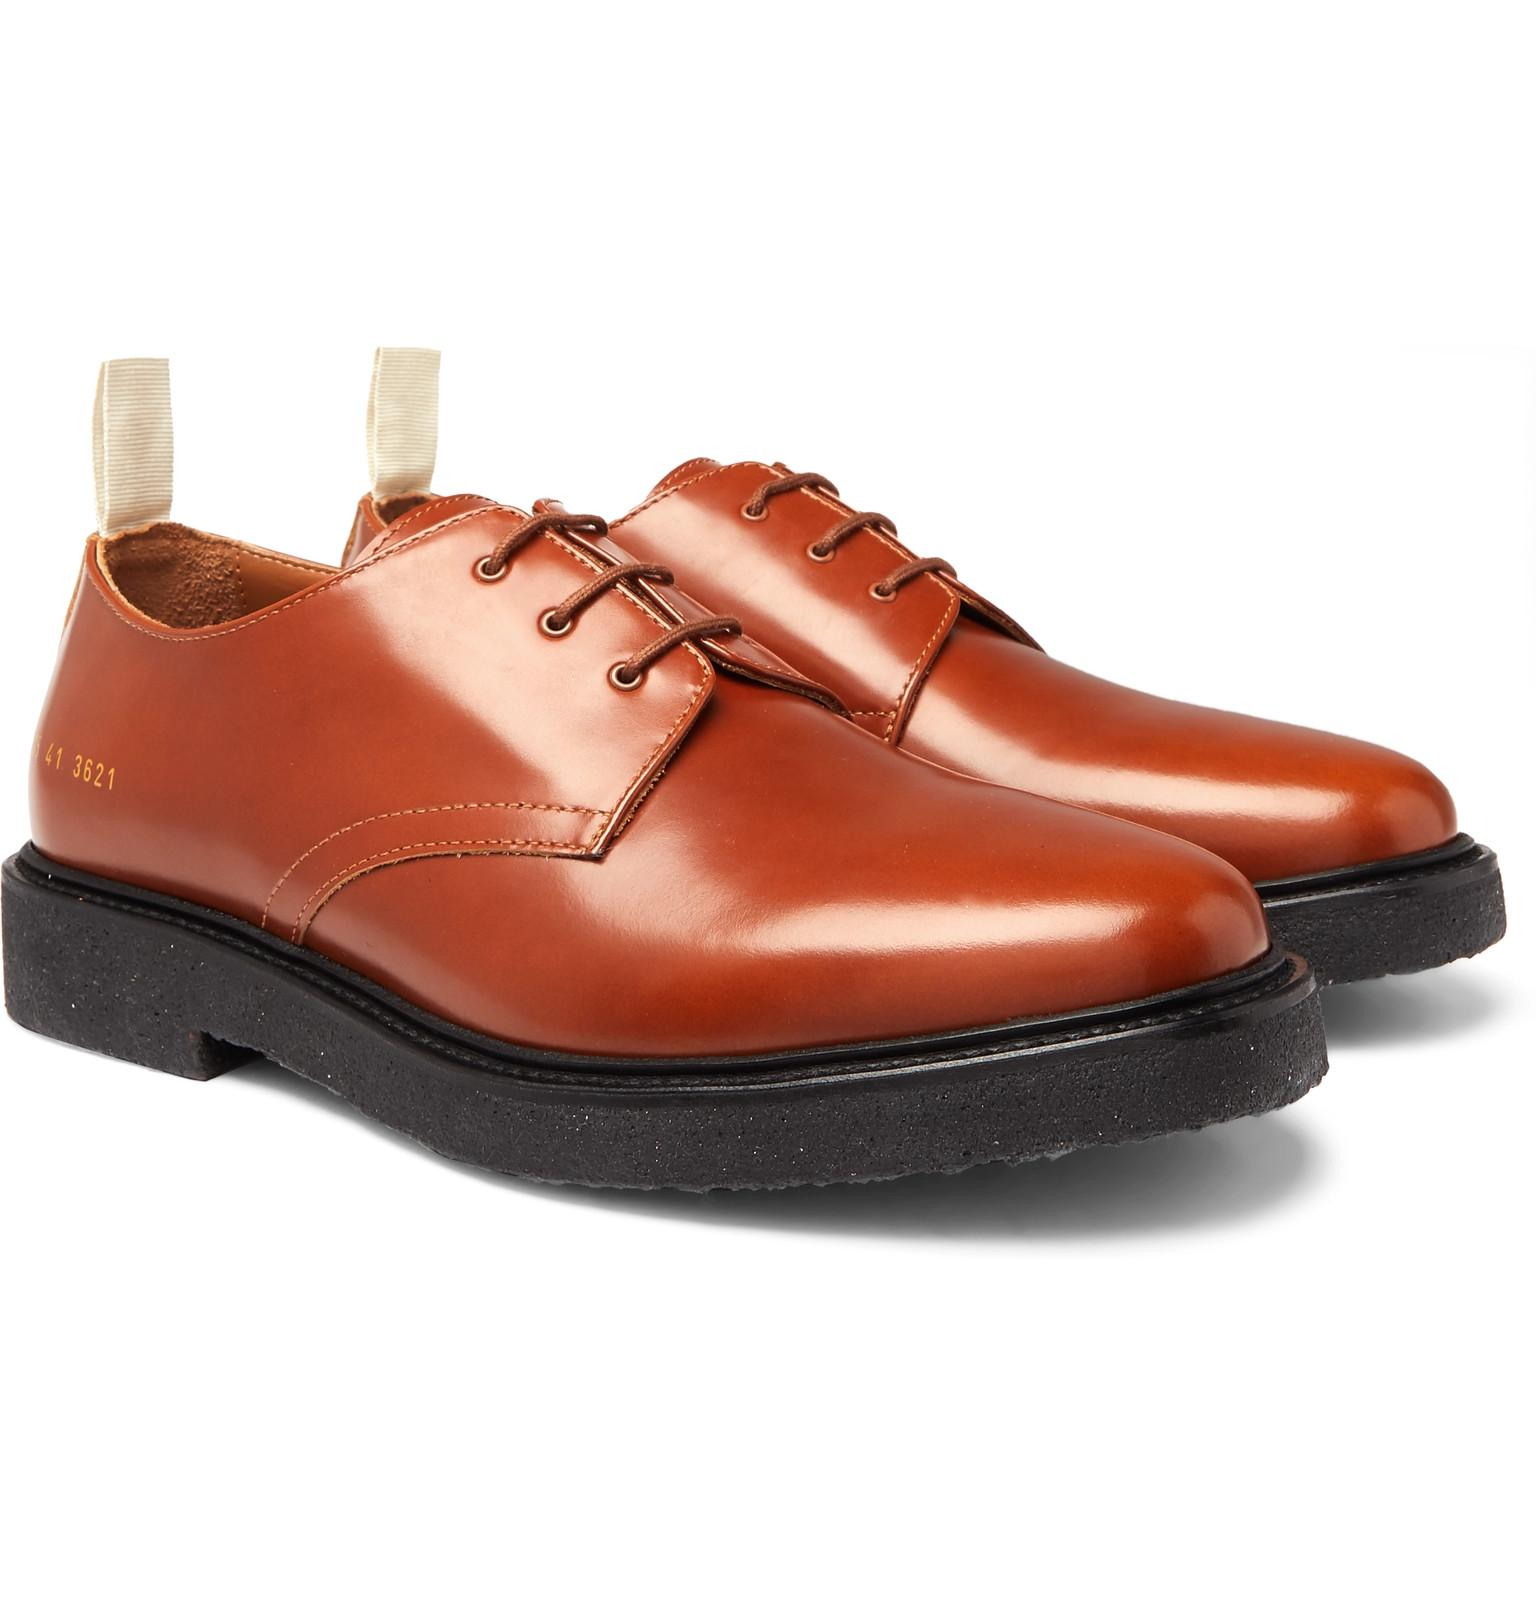 0b69f2d9f5e7 Lyst - Common Projects Cadet Leather Derby Shoes in Brown for Men